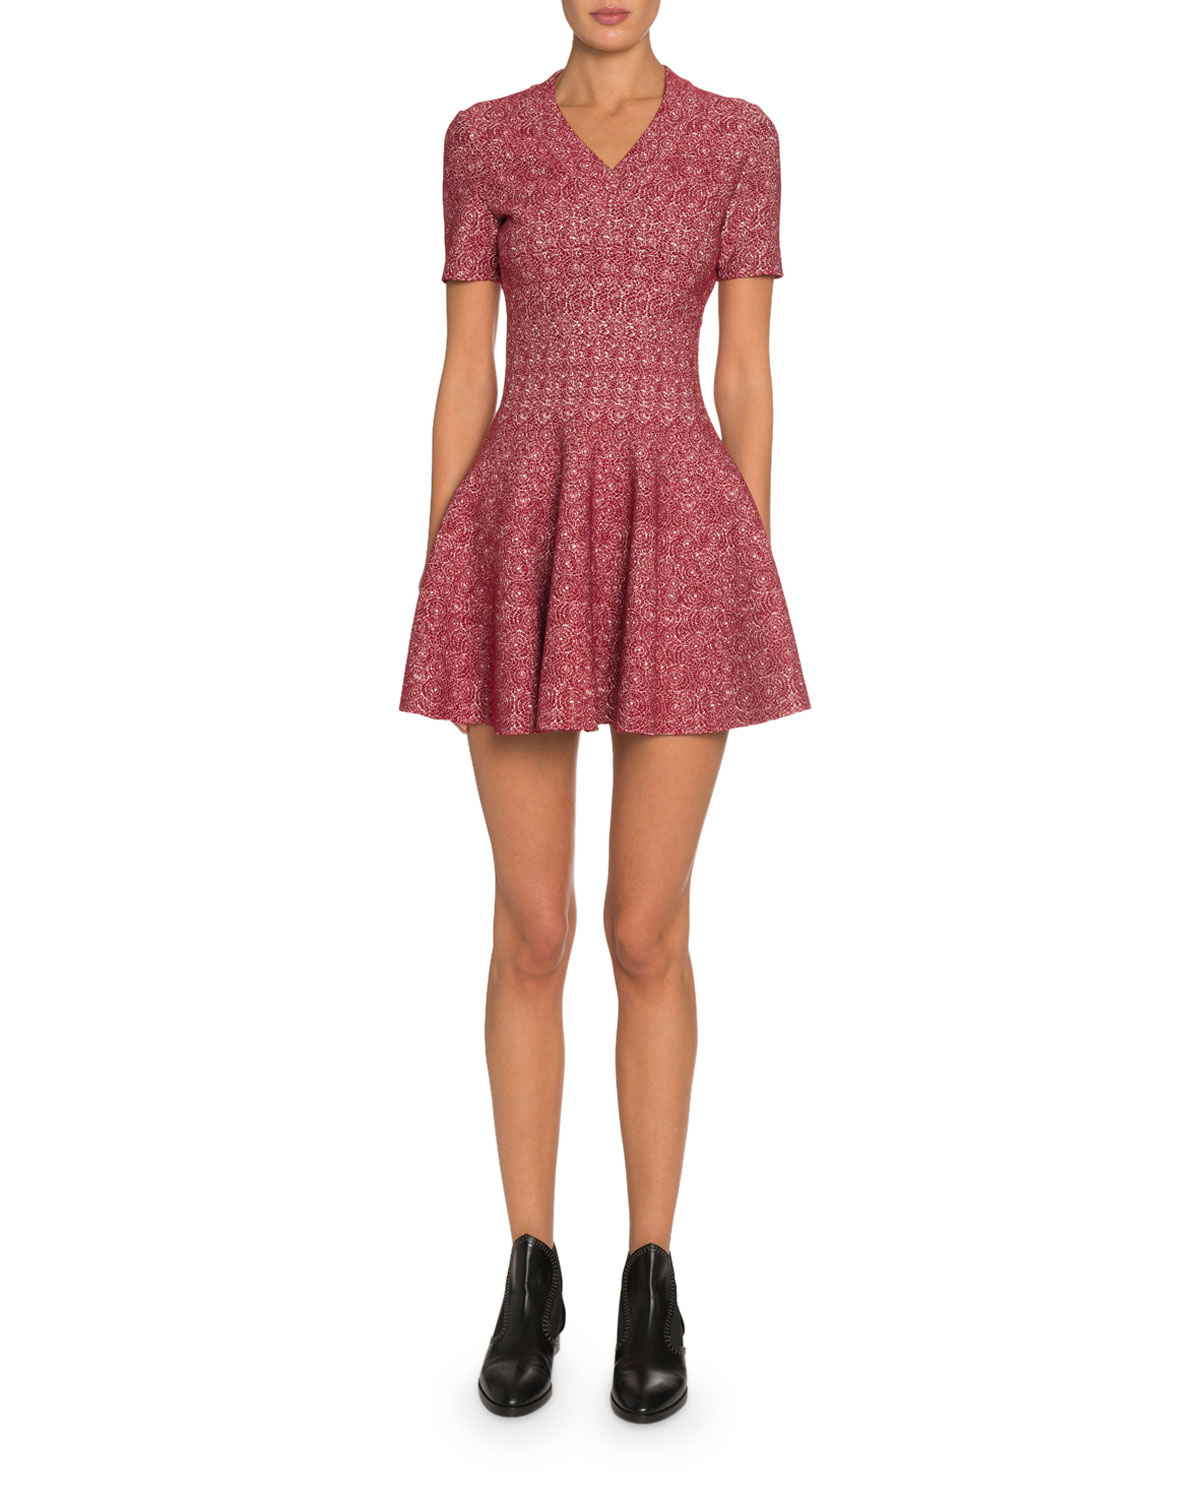 Alaïa Dresses SPIDER FLORAL JACQUARD V-NECK DRESS